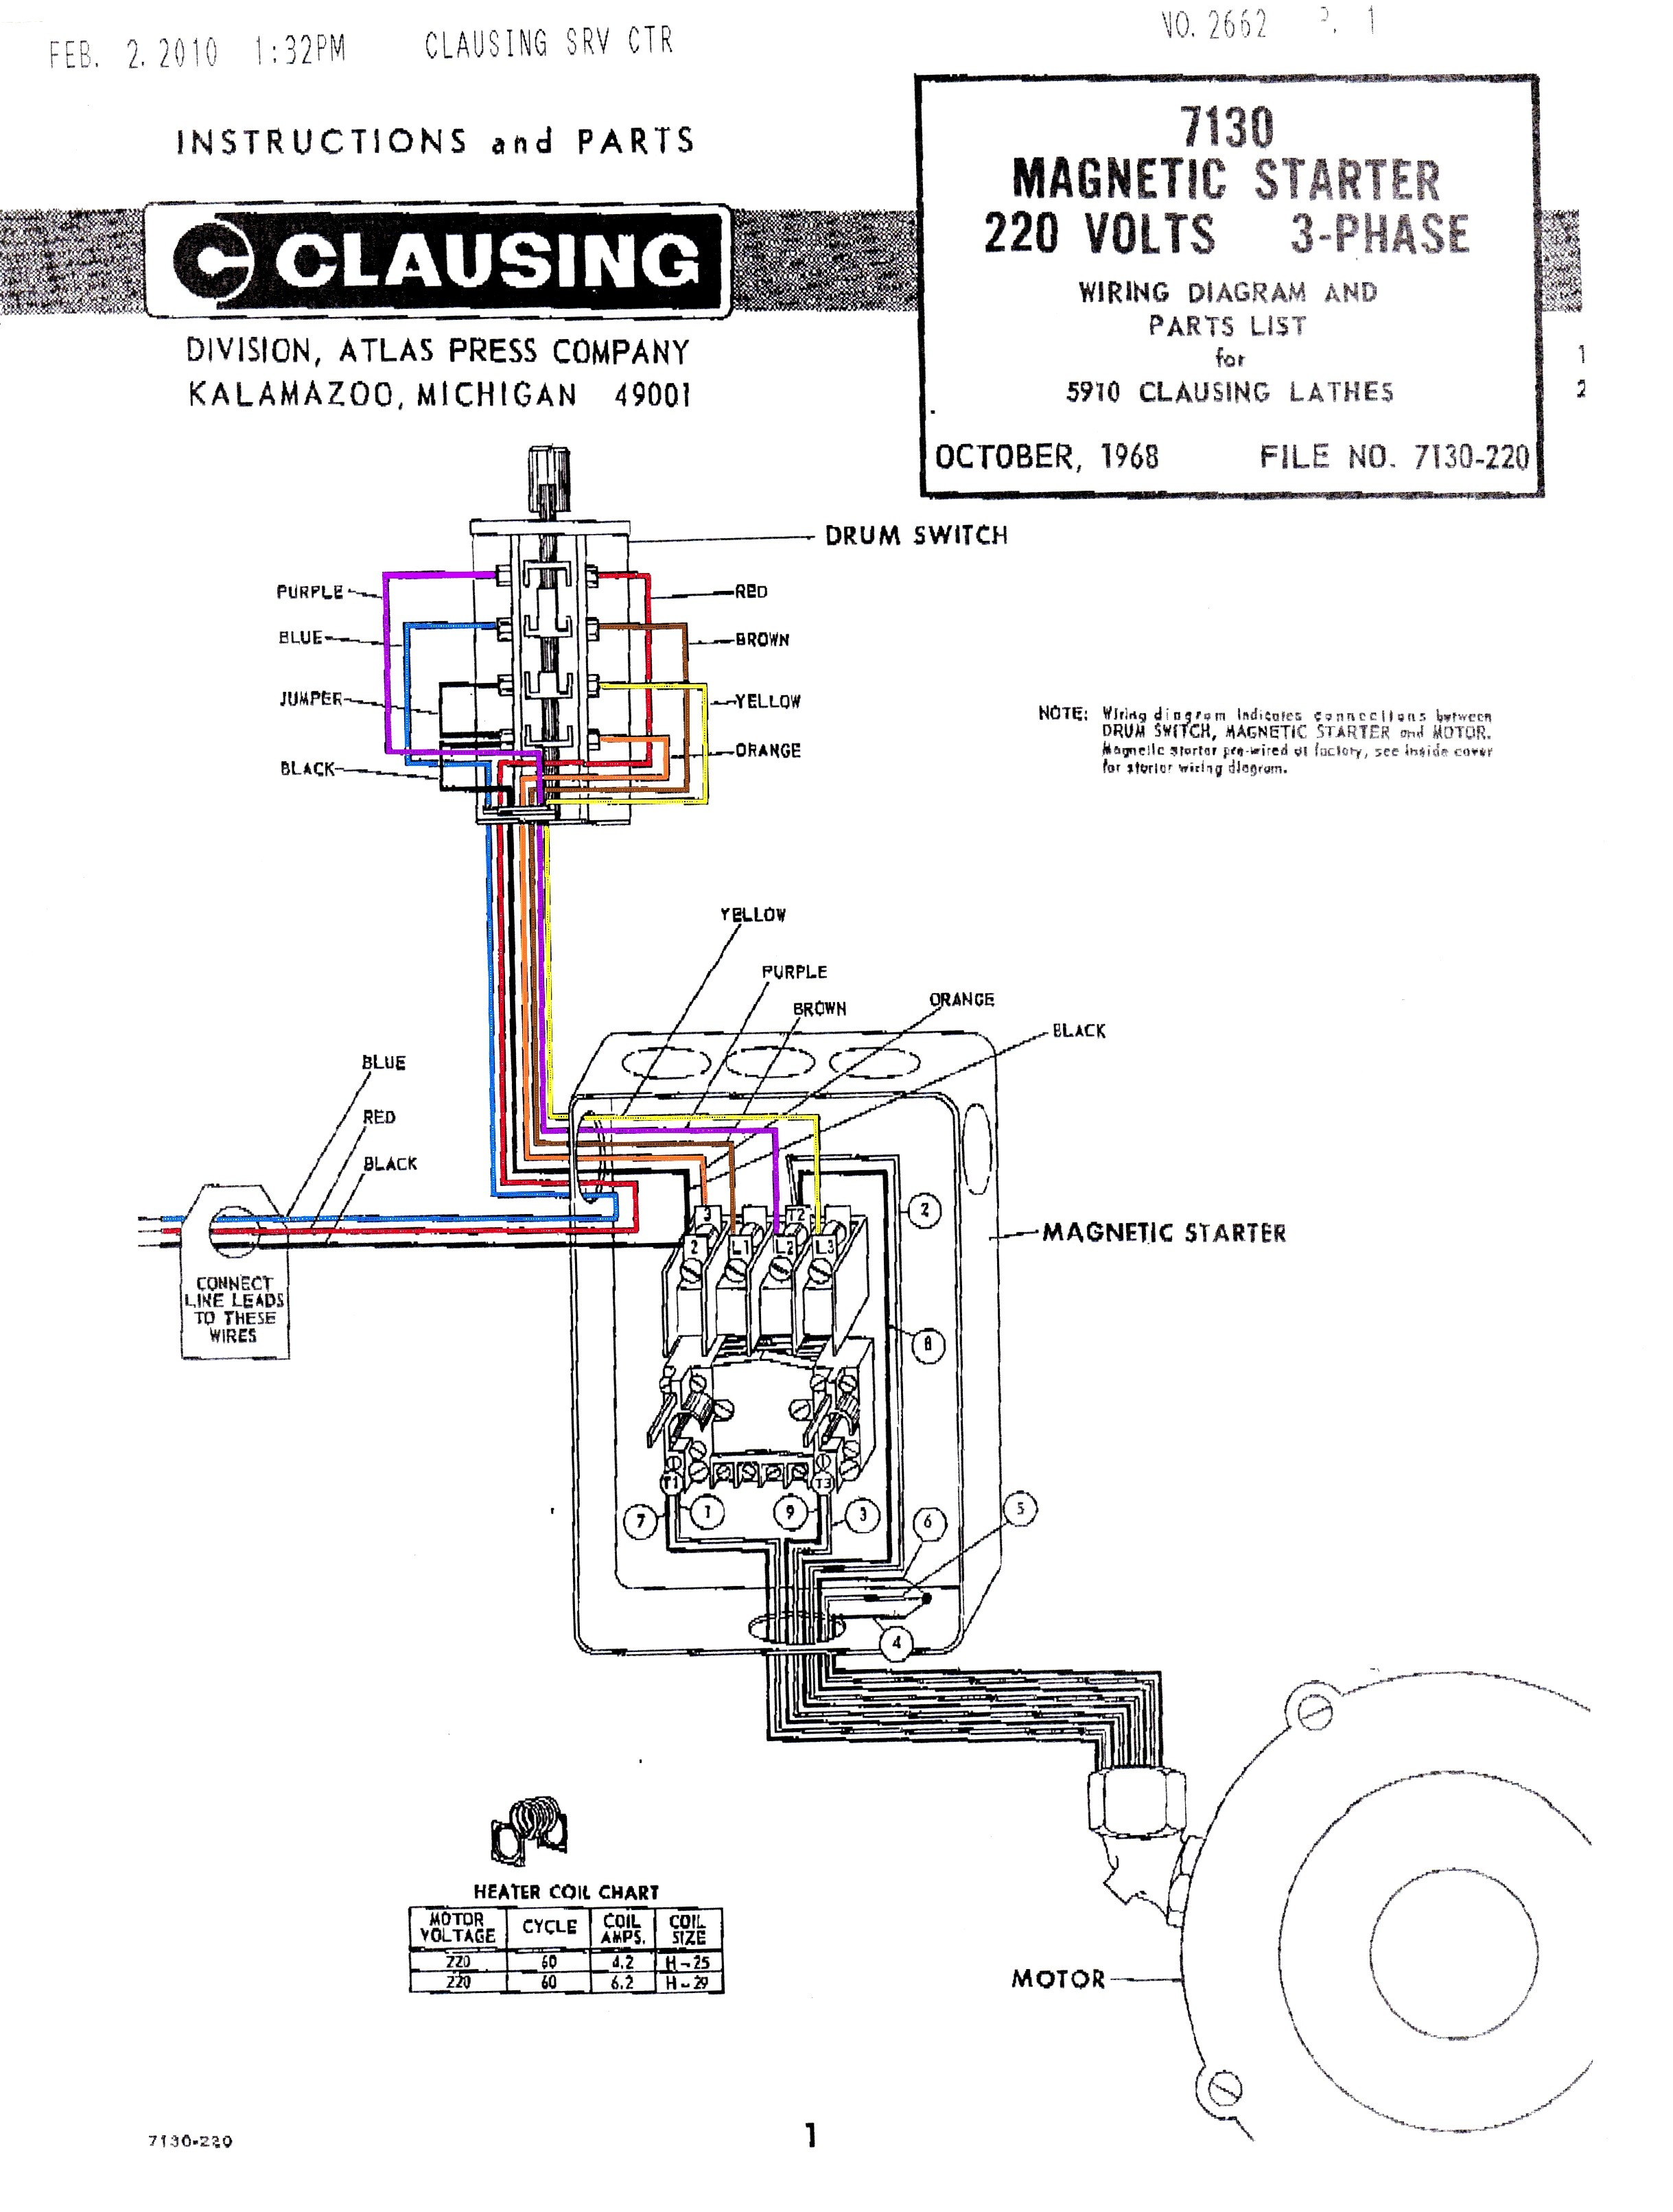 Vfd Control Wiring Diagram Enthusiast Diagrams Danfoss Current Relay Sie House Symbols U2022 Rh Maxturner Co Panel